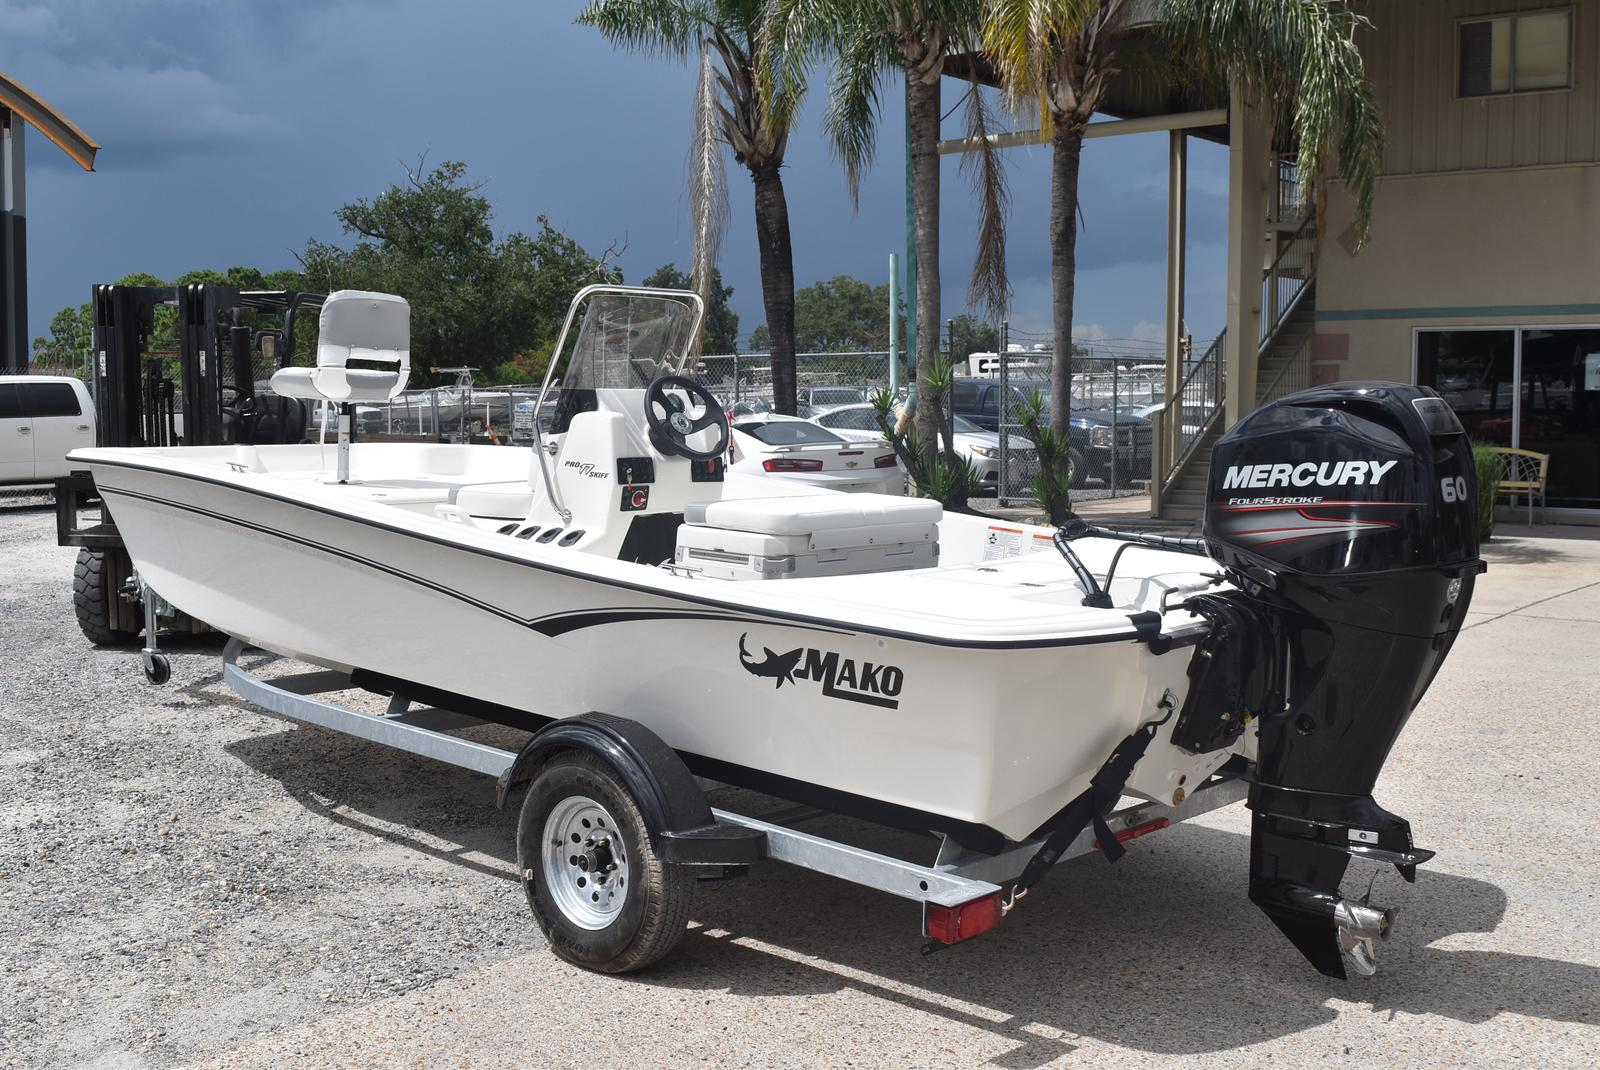 2020 Mako boat for sale, model of the boat is Pro Skiff 17, 75 ELPT & Image # 228 of 702